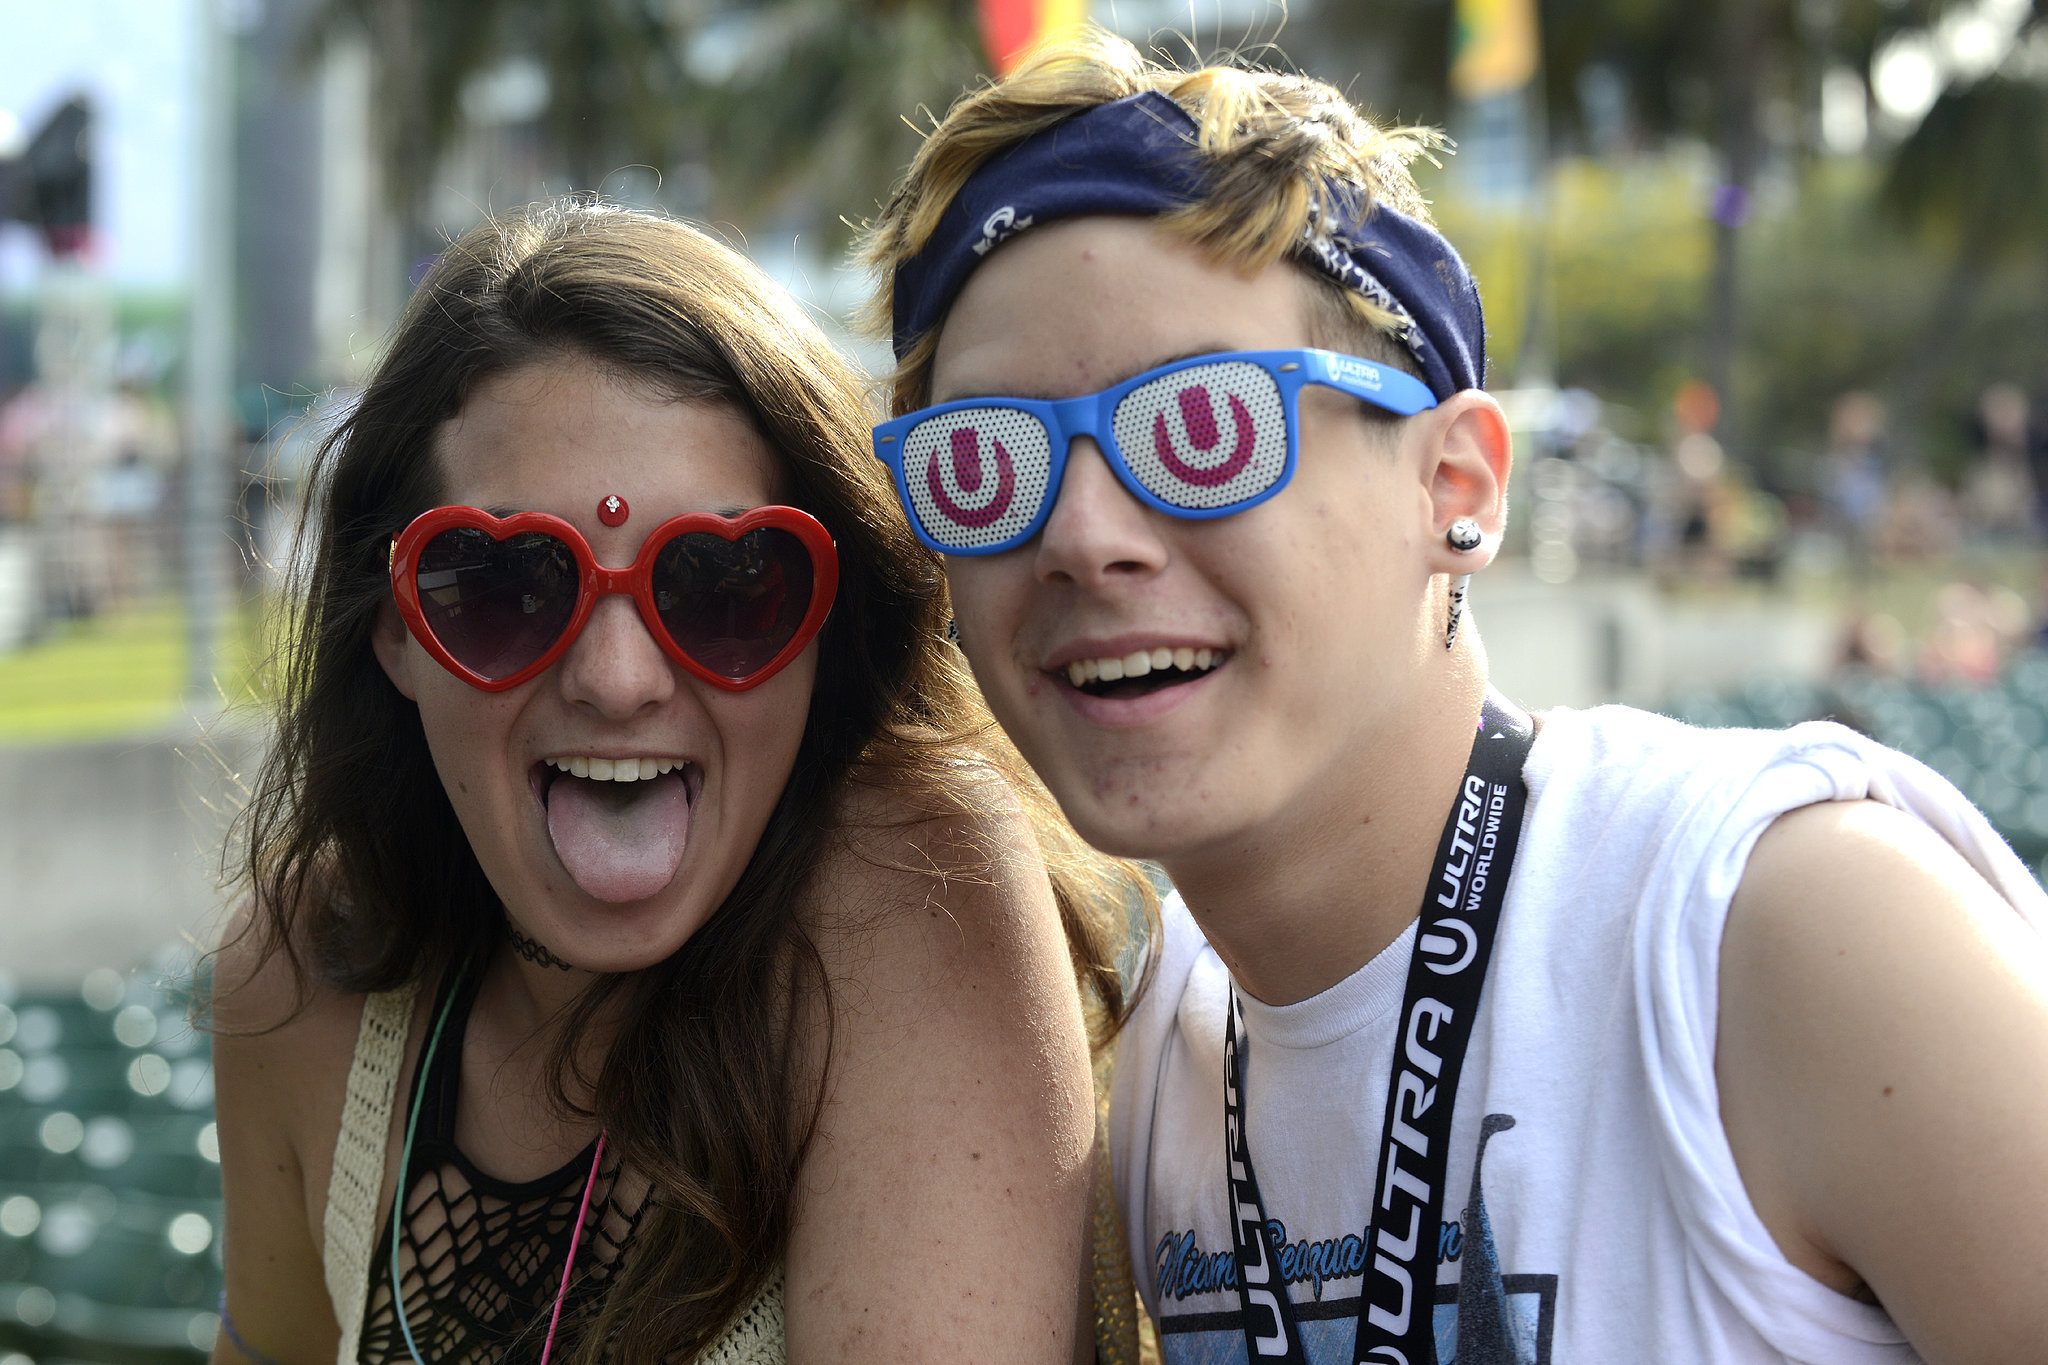 A pair got silly at the Ultra Music Festival in Miami, FL.